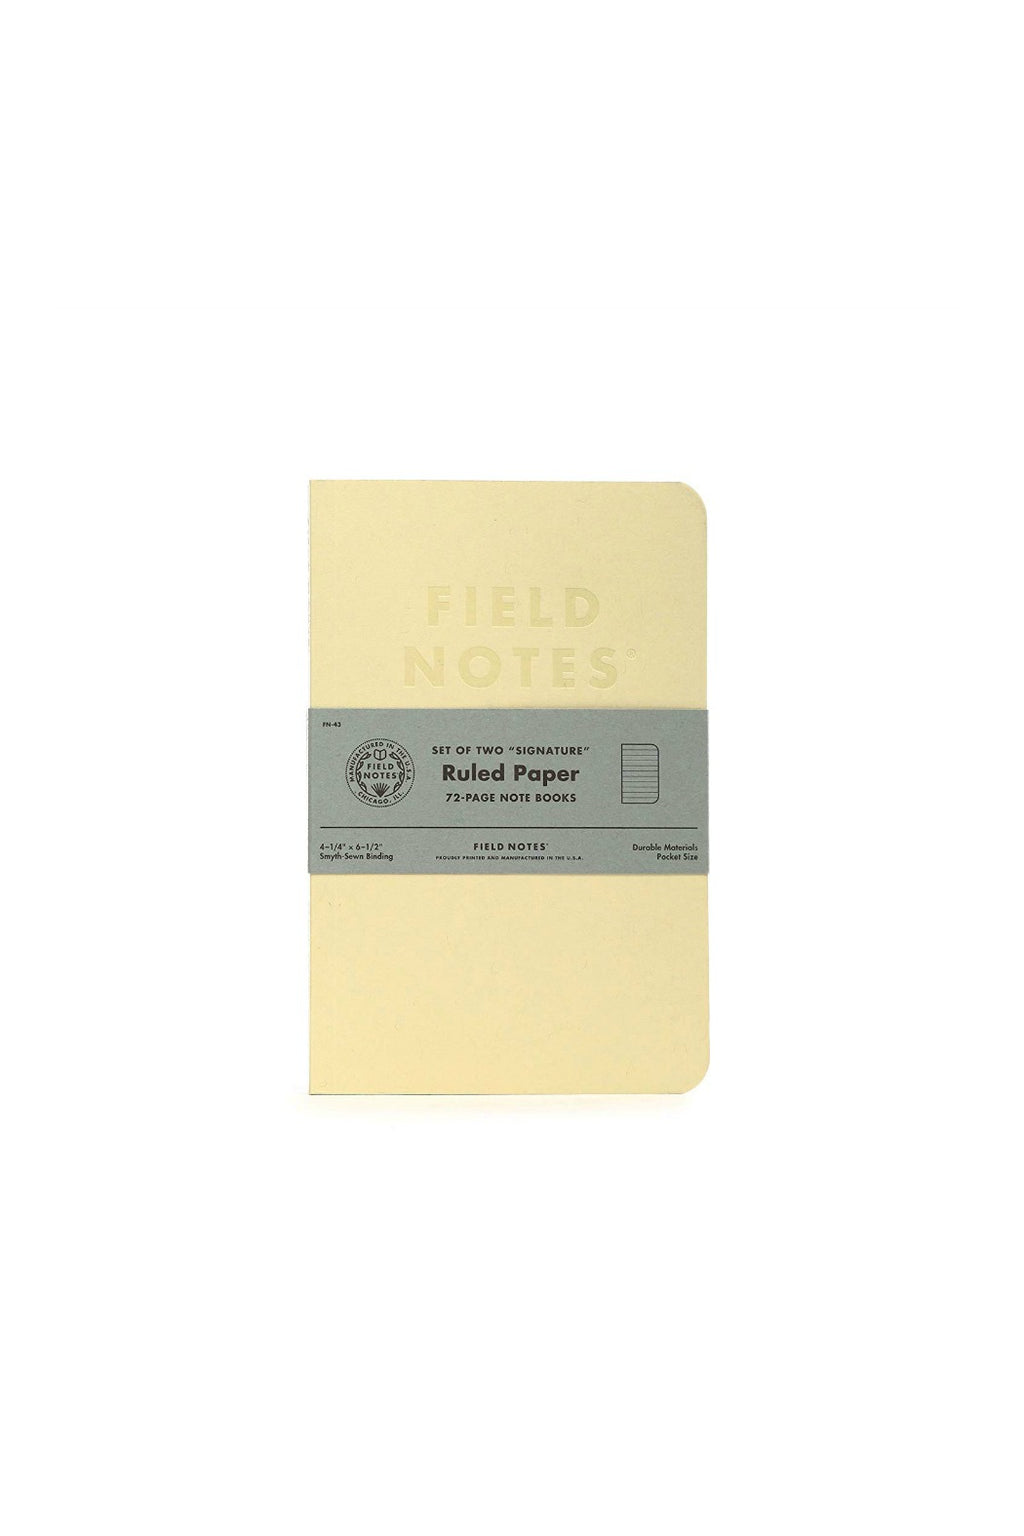 Field Notes Signature Sketch Book & Note Book - Ruled Paper